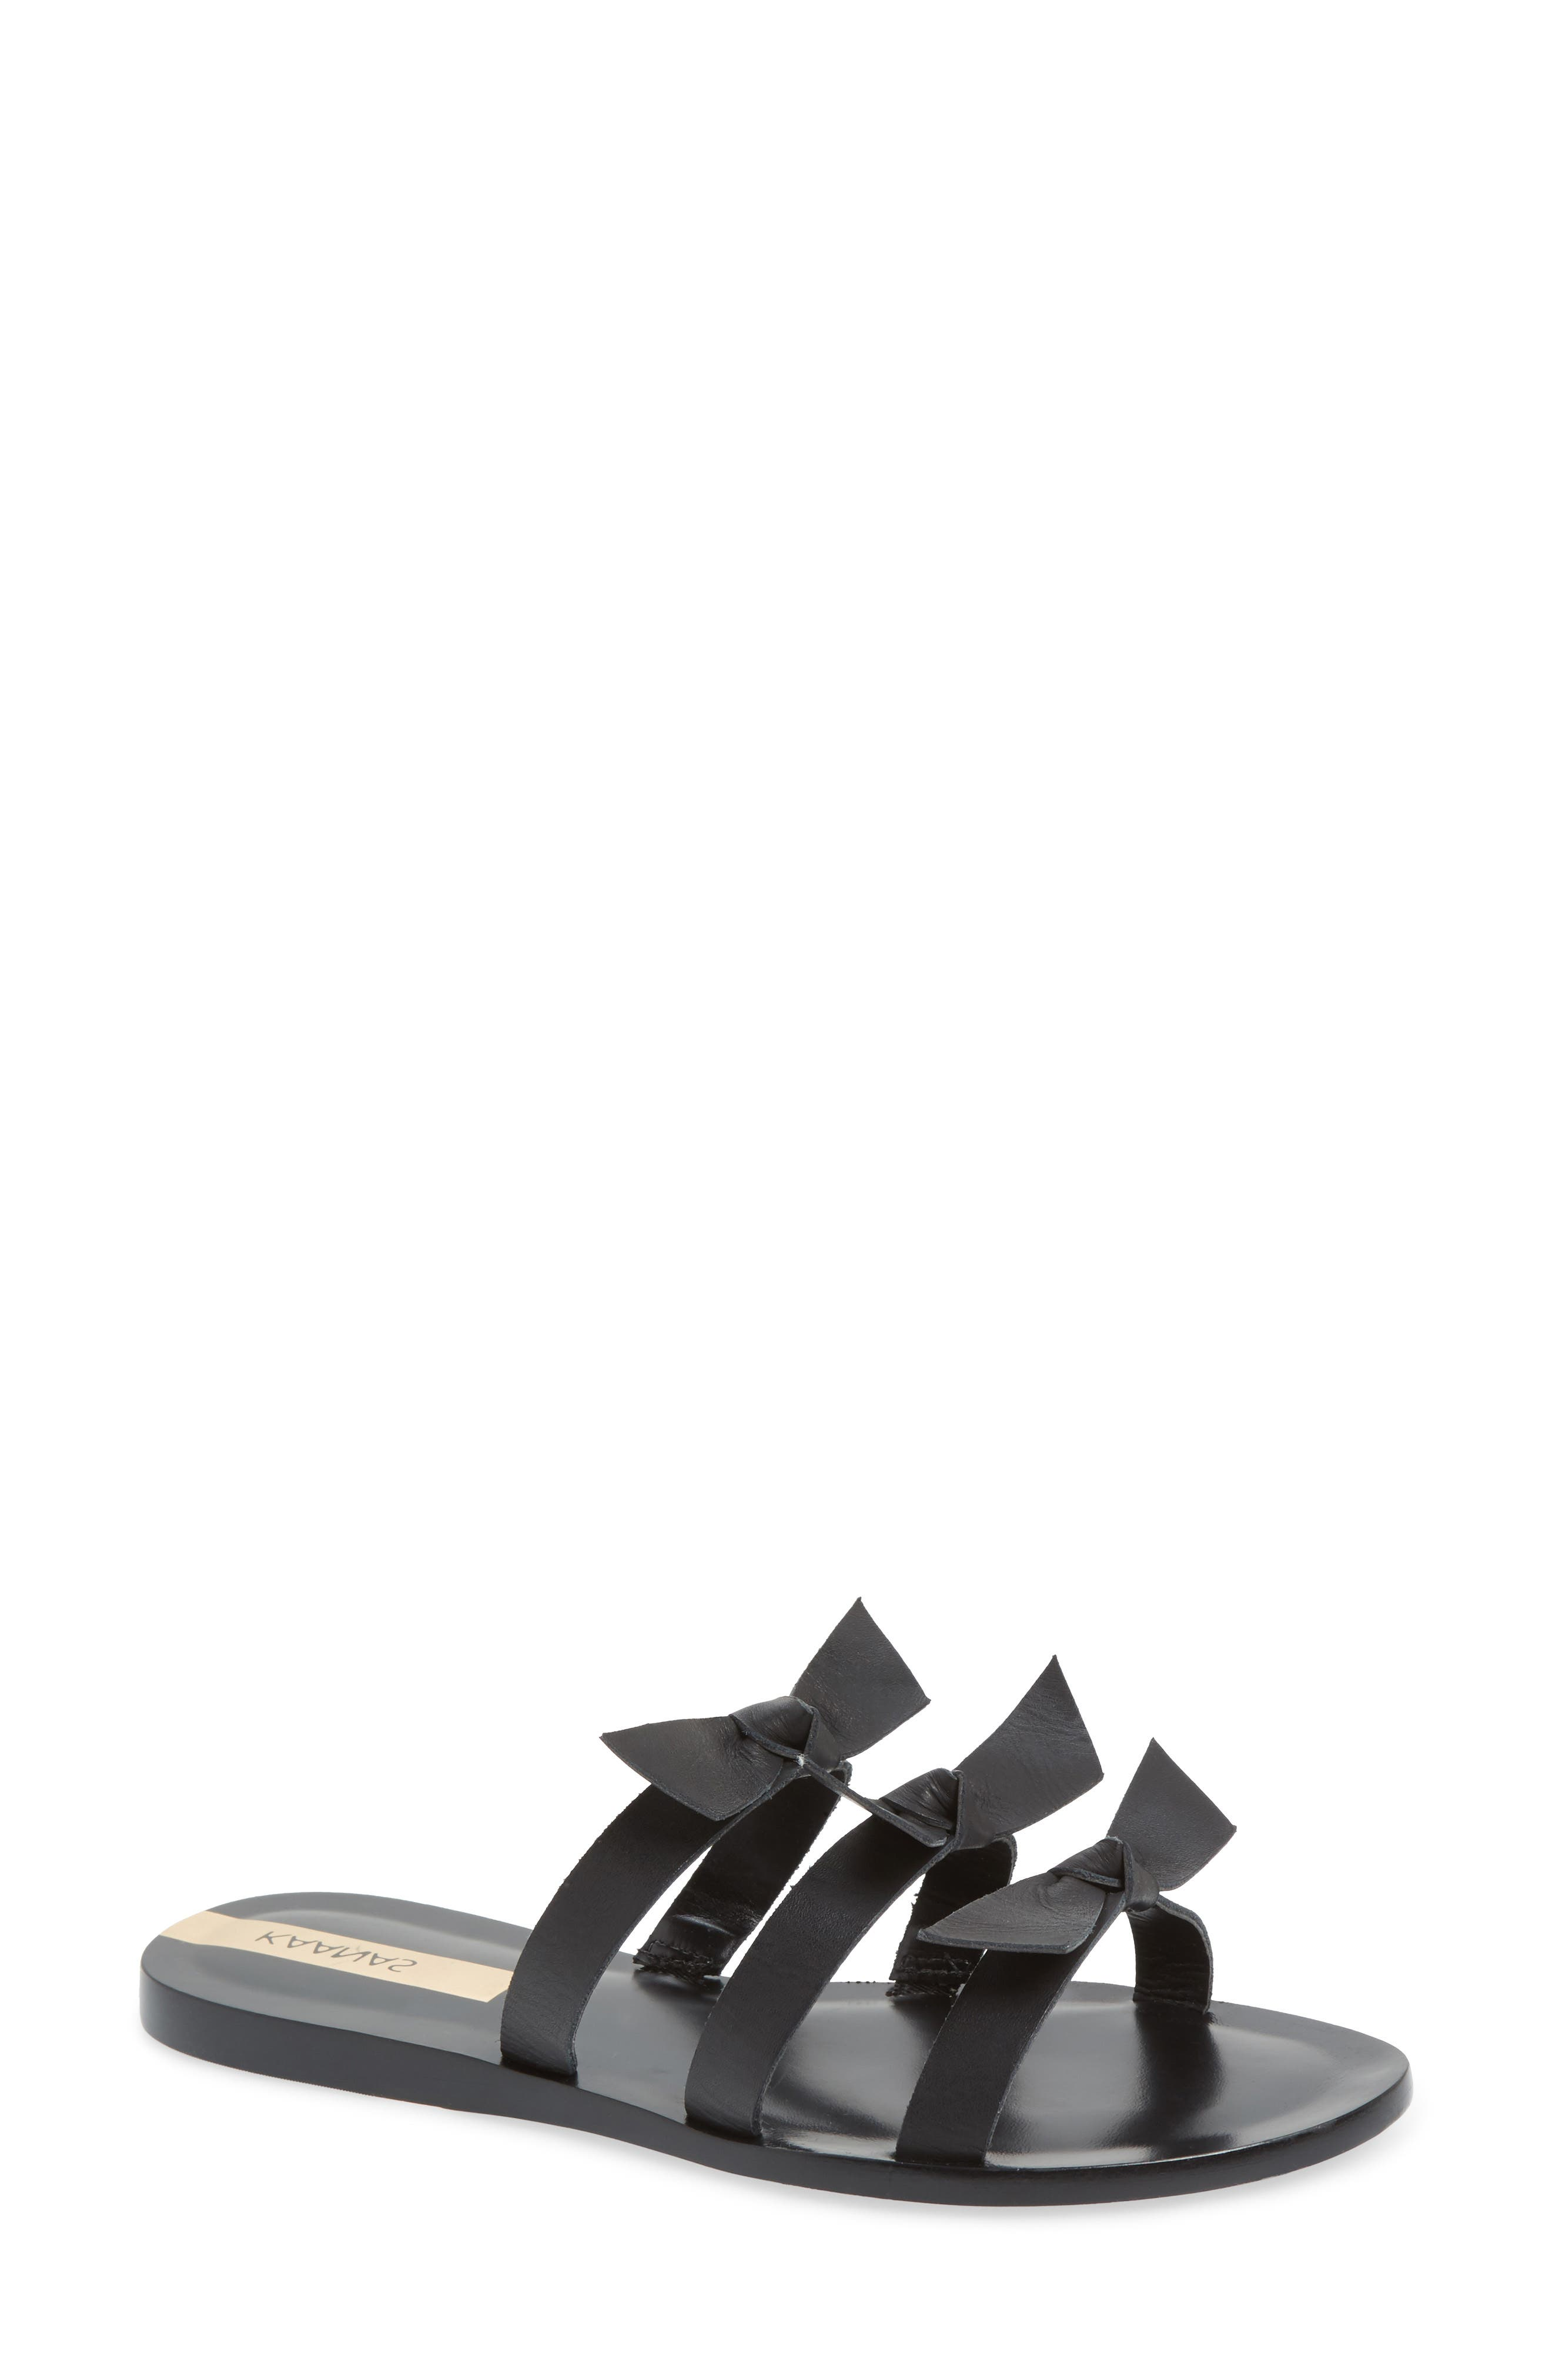 Recife Knotted Slide Sandal,                         Main,                         color, BLACK